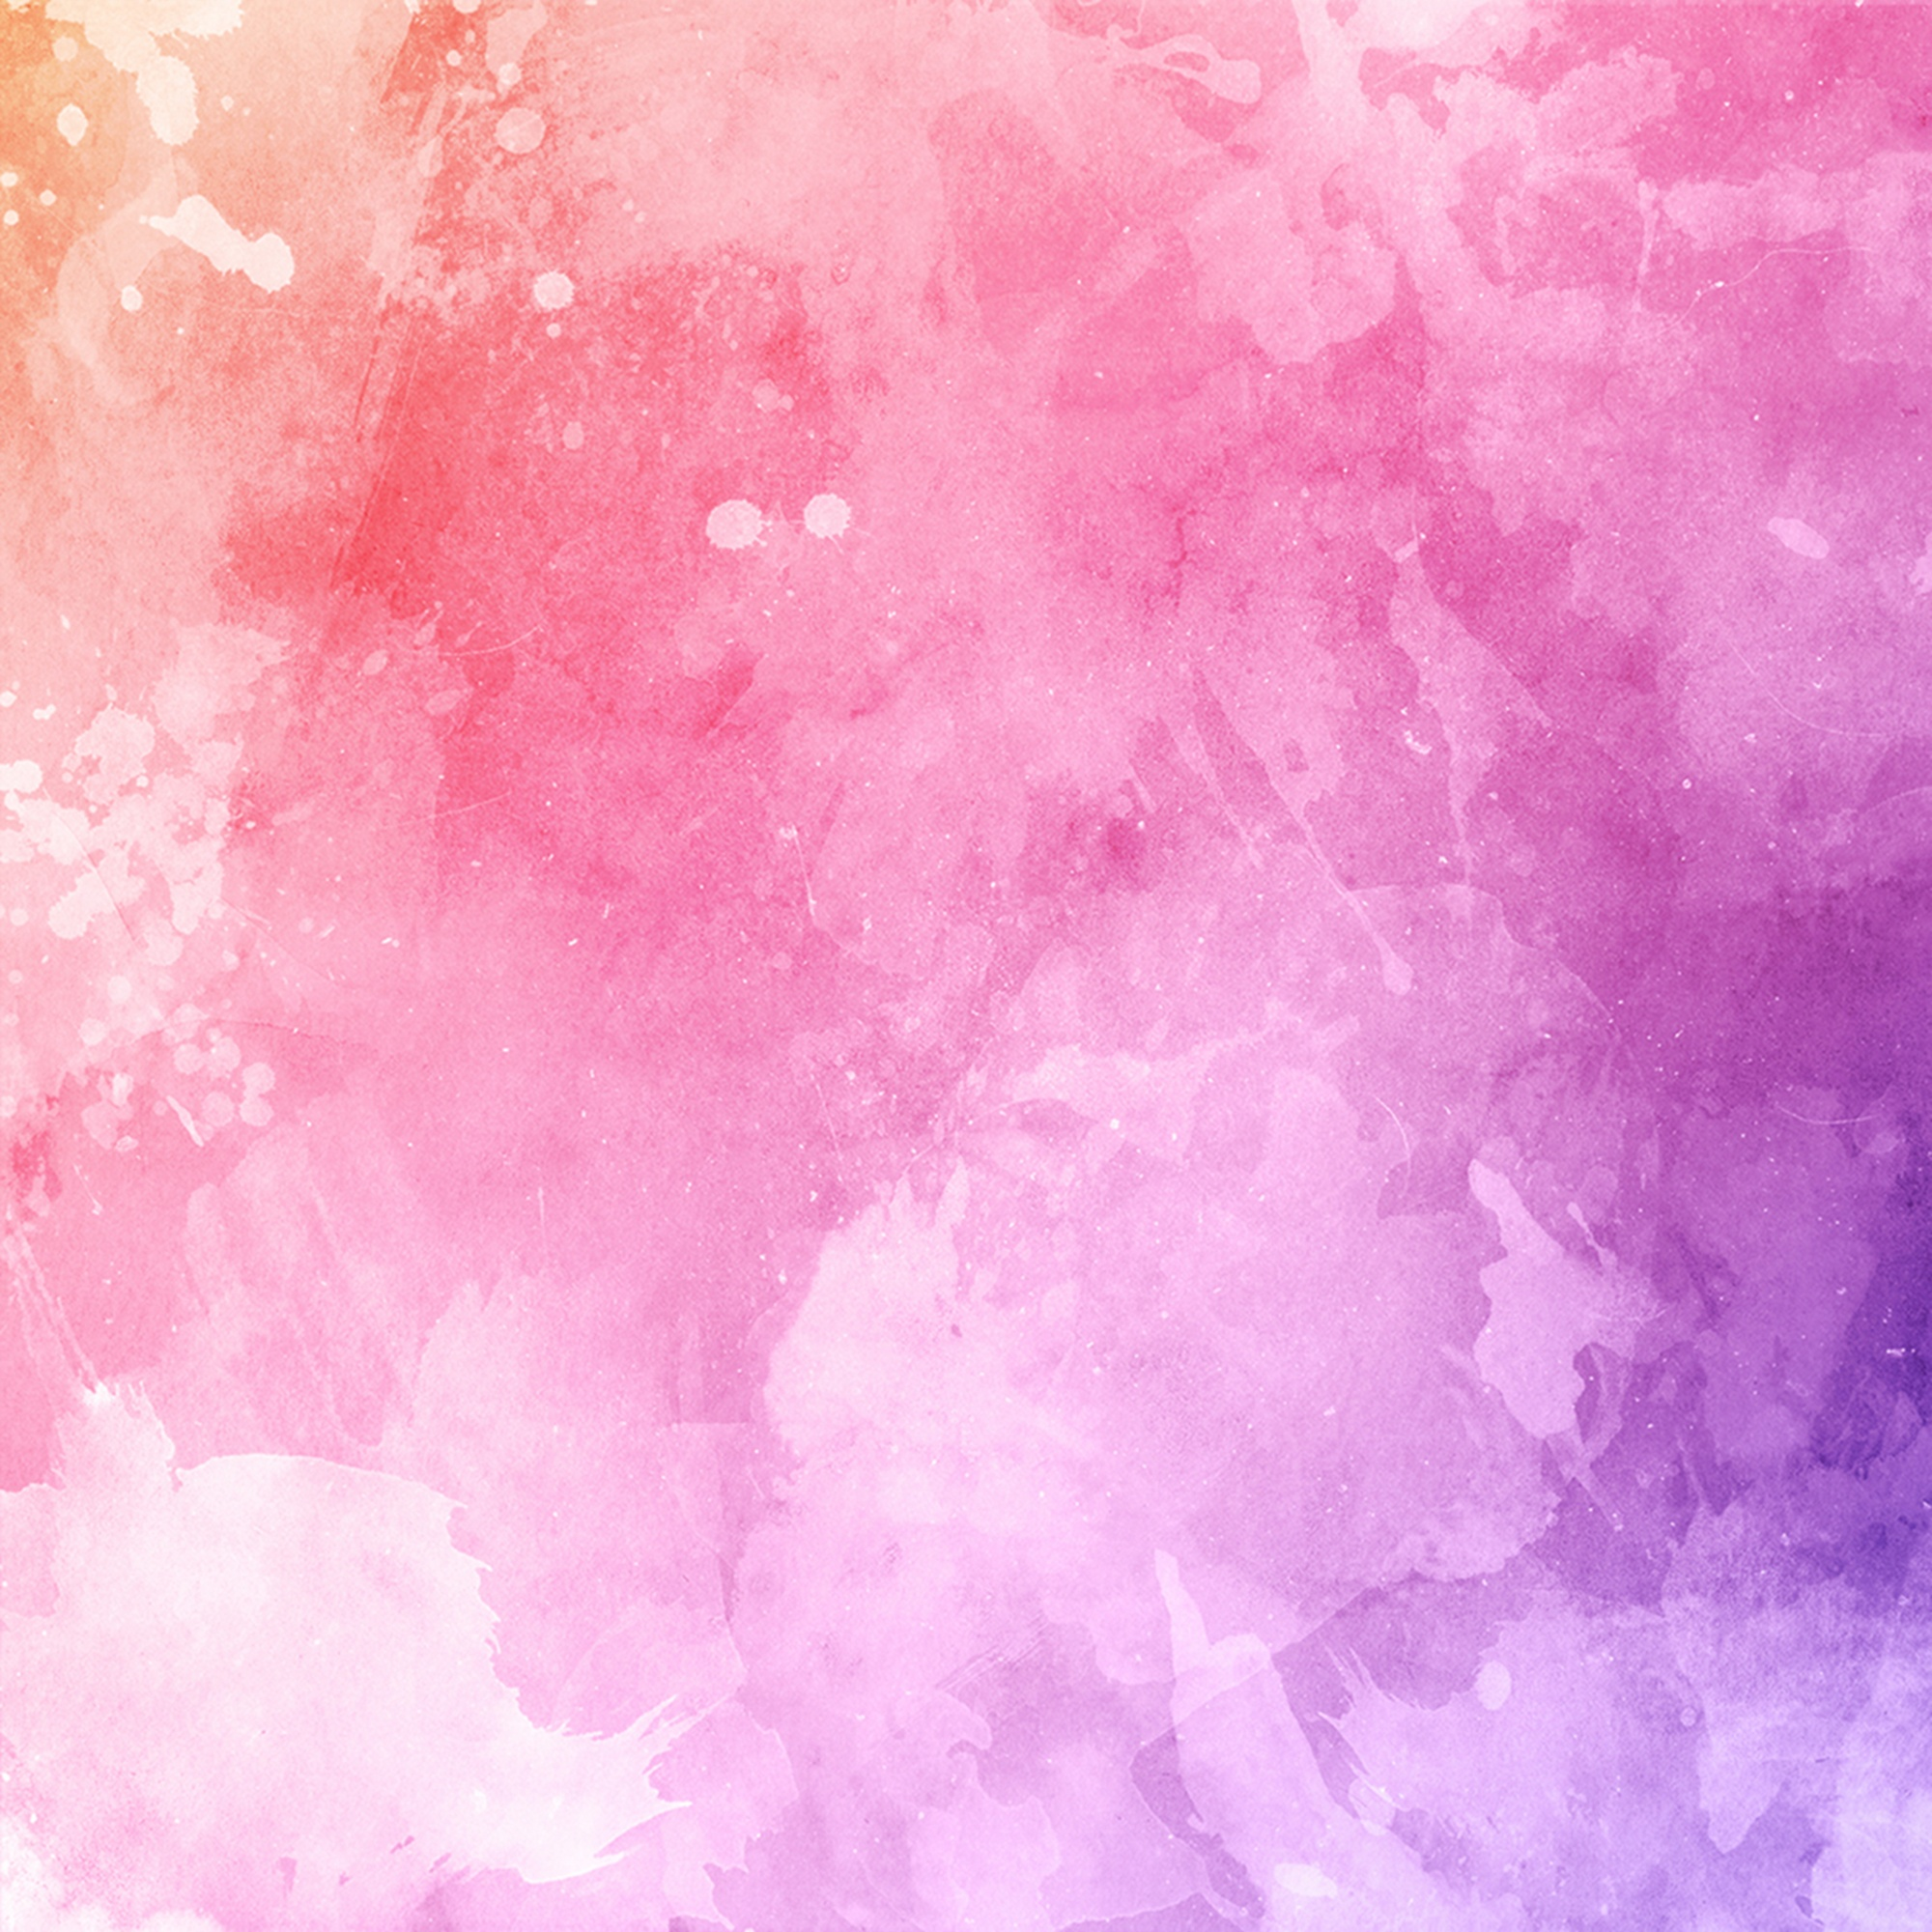 Pink texture watercolor